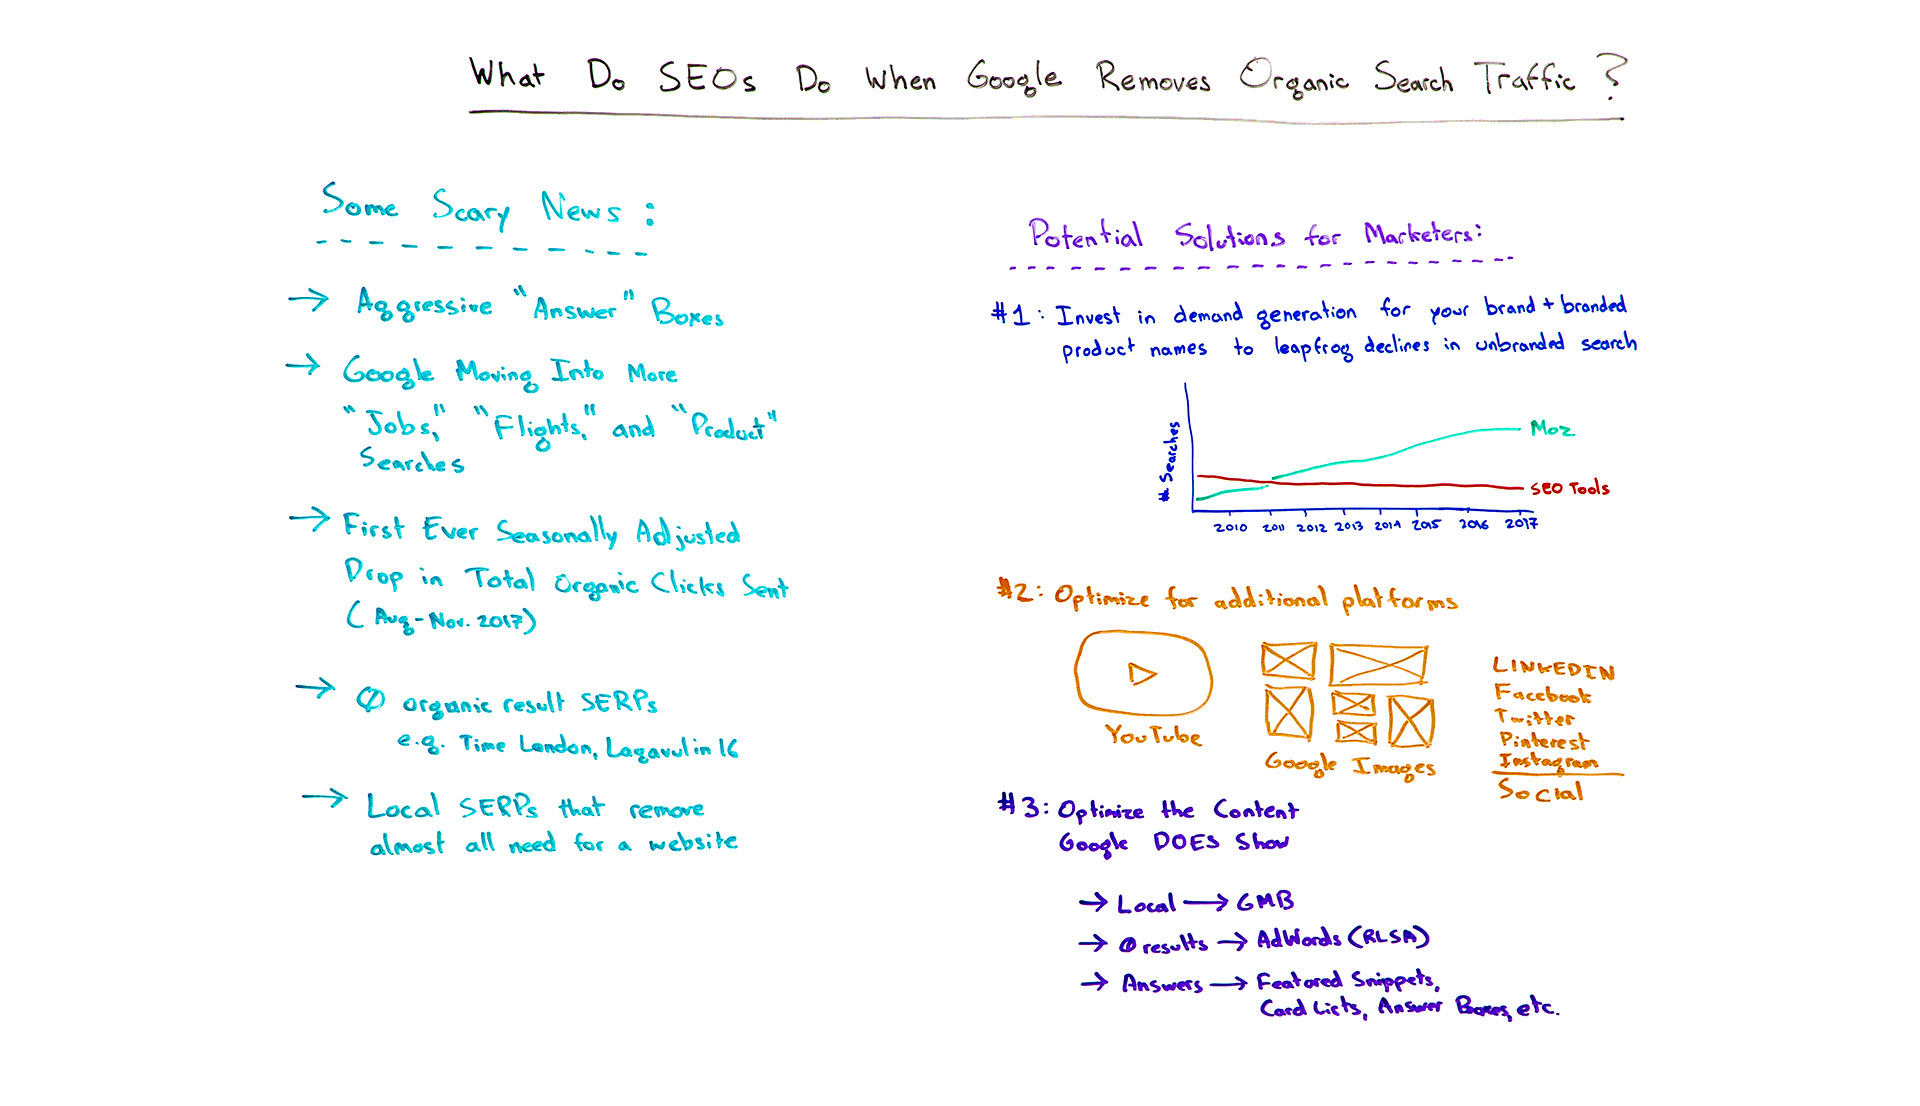 What Do SEOs Do When Google Removes Organic Search?